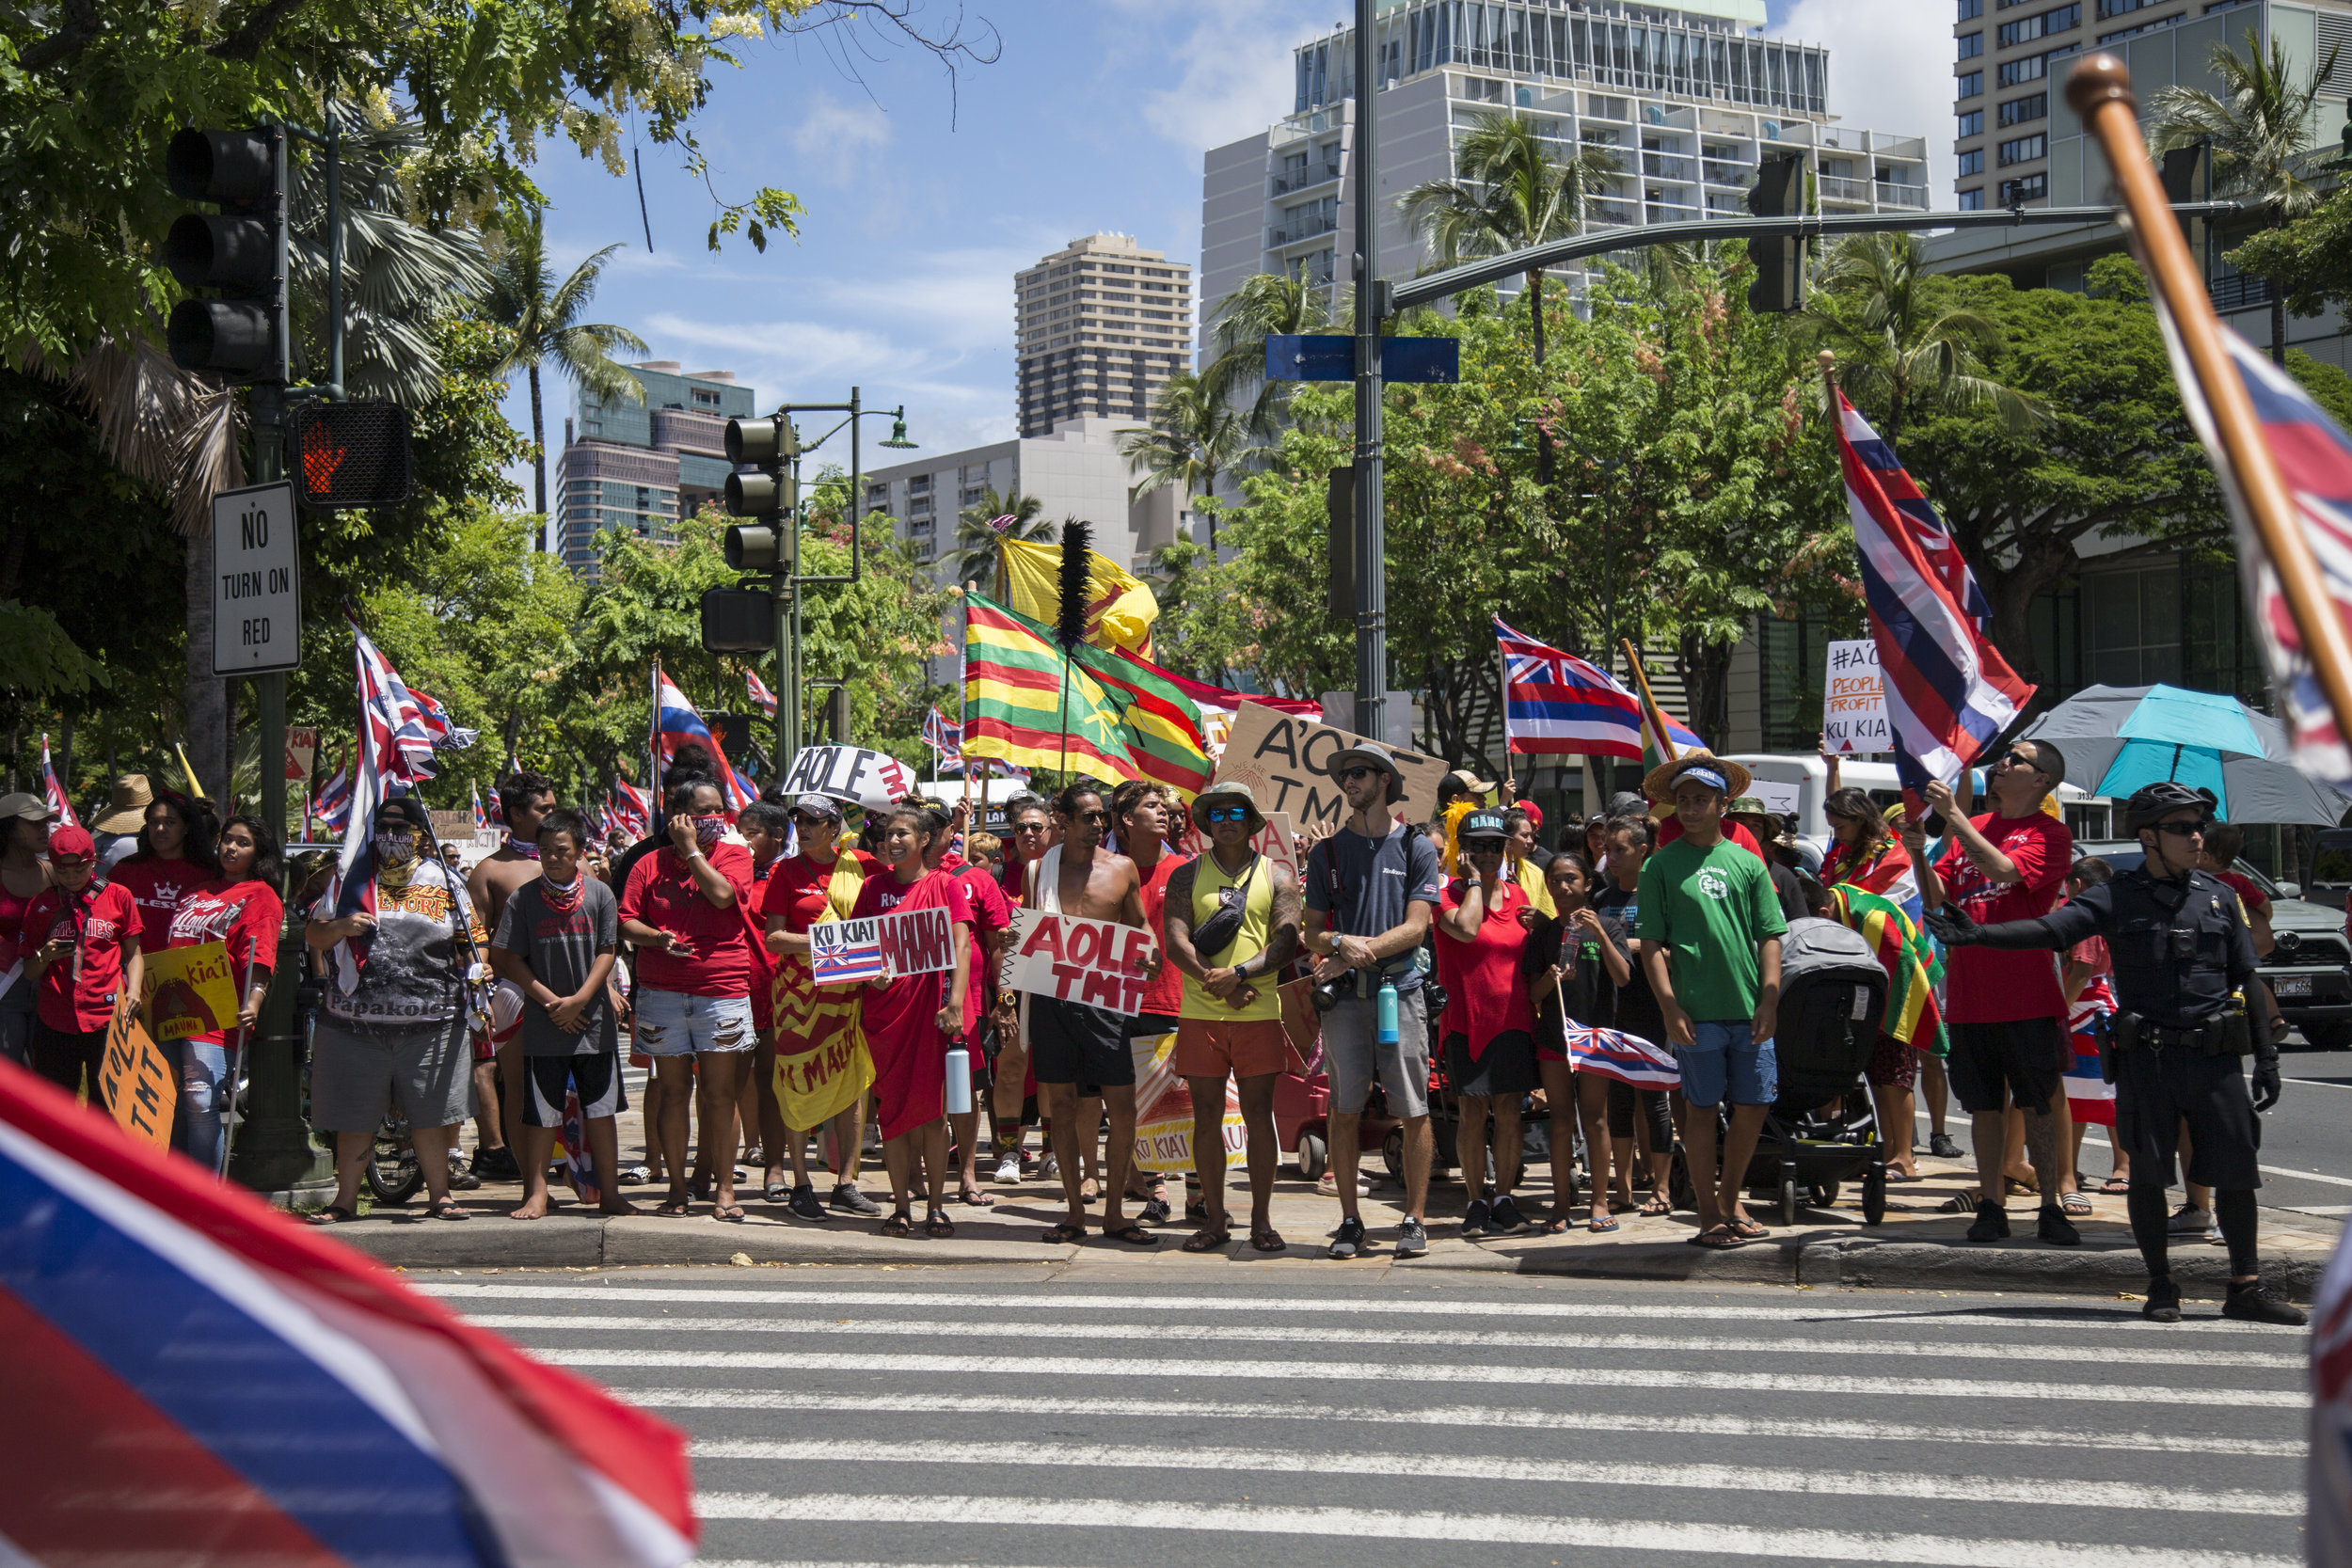 Kiaʻi wait at a crosswalk during Waikiki for Maunakea on July 21, 2019. On this day, thousands of people marched along Kalakaua Avenue in Waikiki in support of Maunakea.